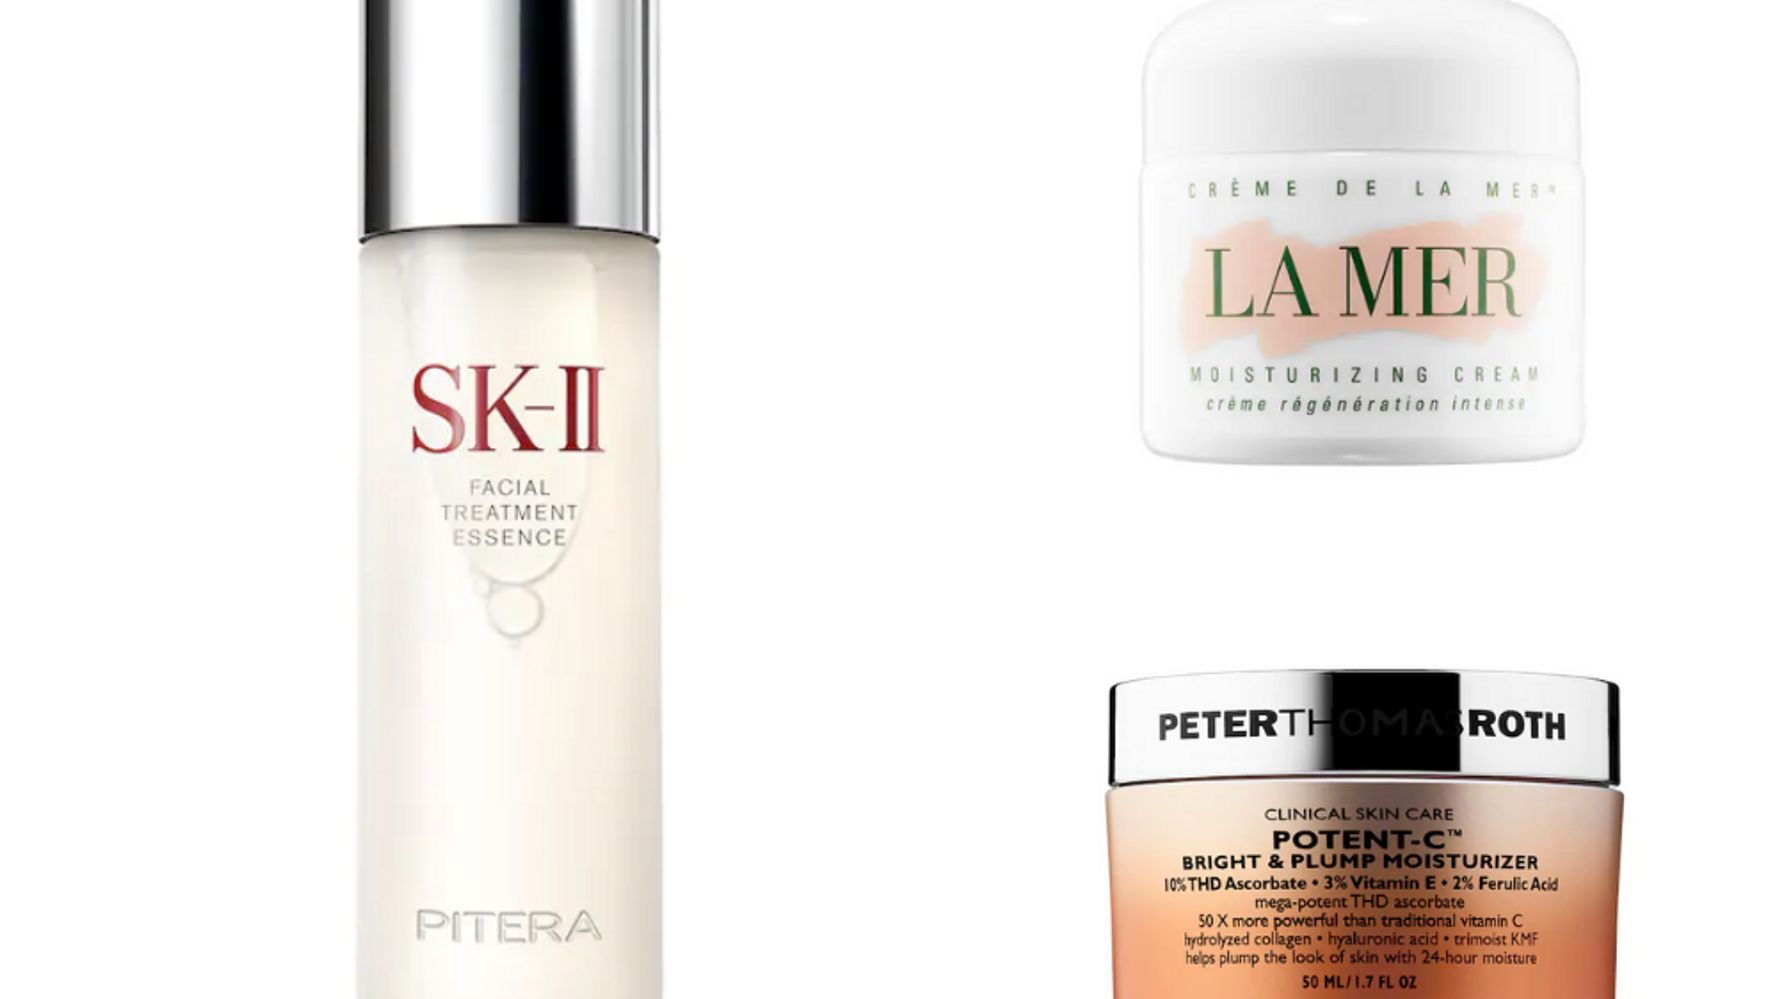 9 Expensive Skin Care Products That Are Worth The Splurge Huffpost Life In 2020 Expensive Skin Care Products Skin Care Thick Moisturizer